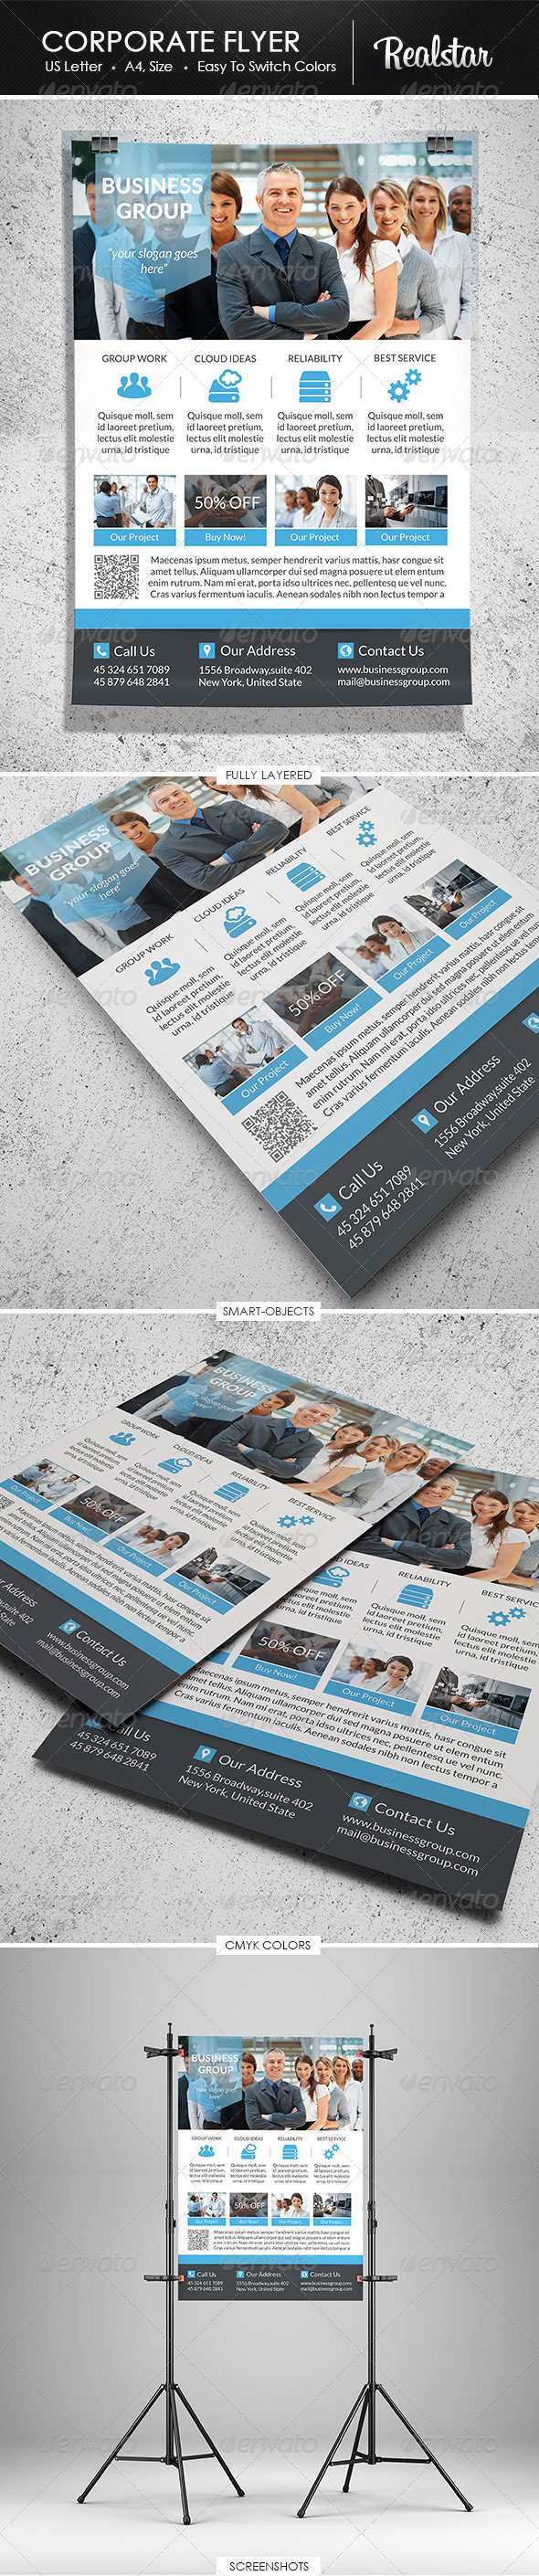 GraphicRiver Corporate Flyer 4600488